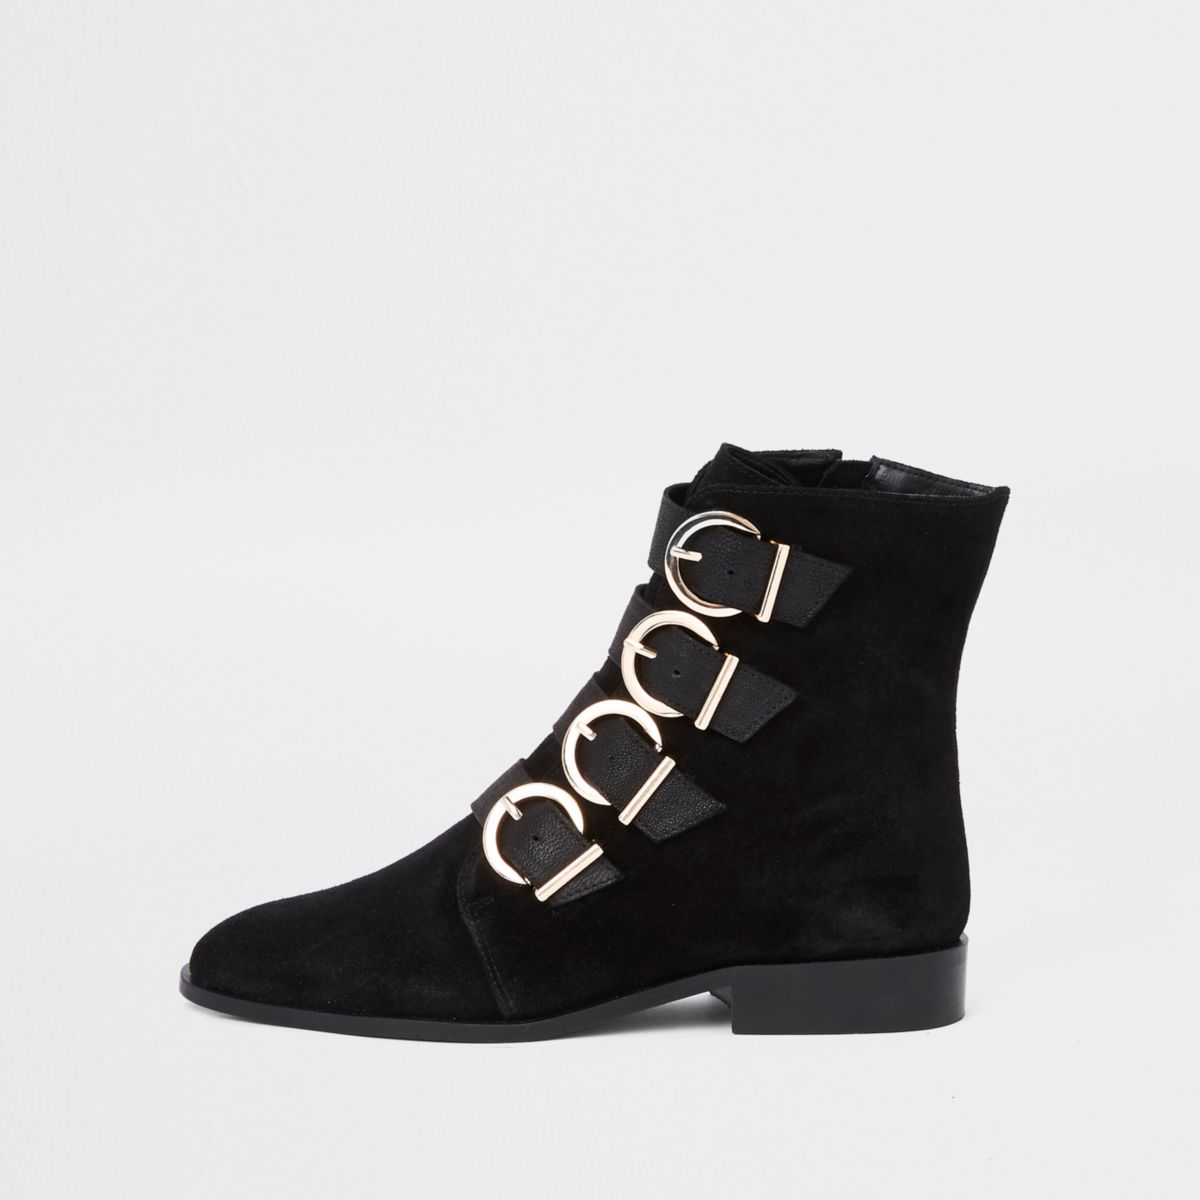 Black leather buckle detail boots